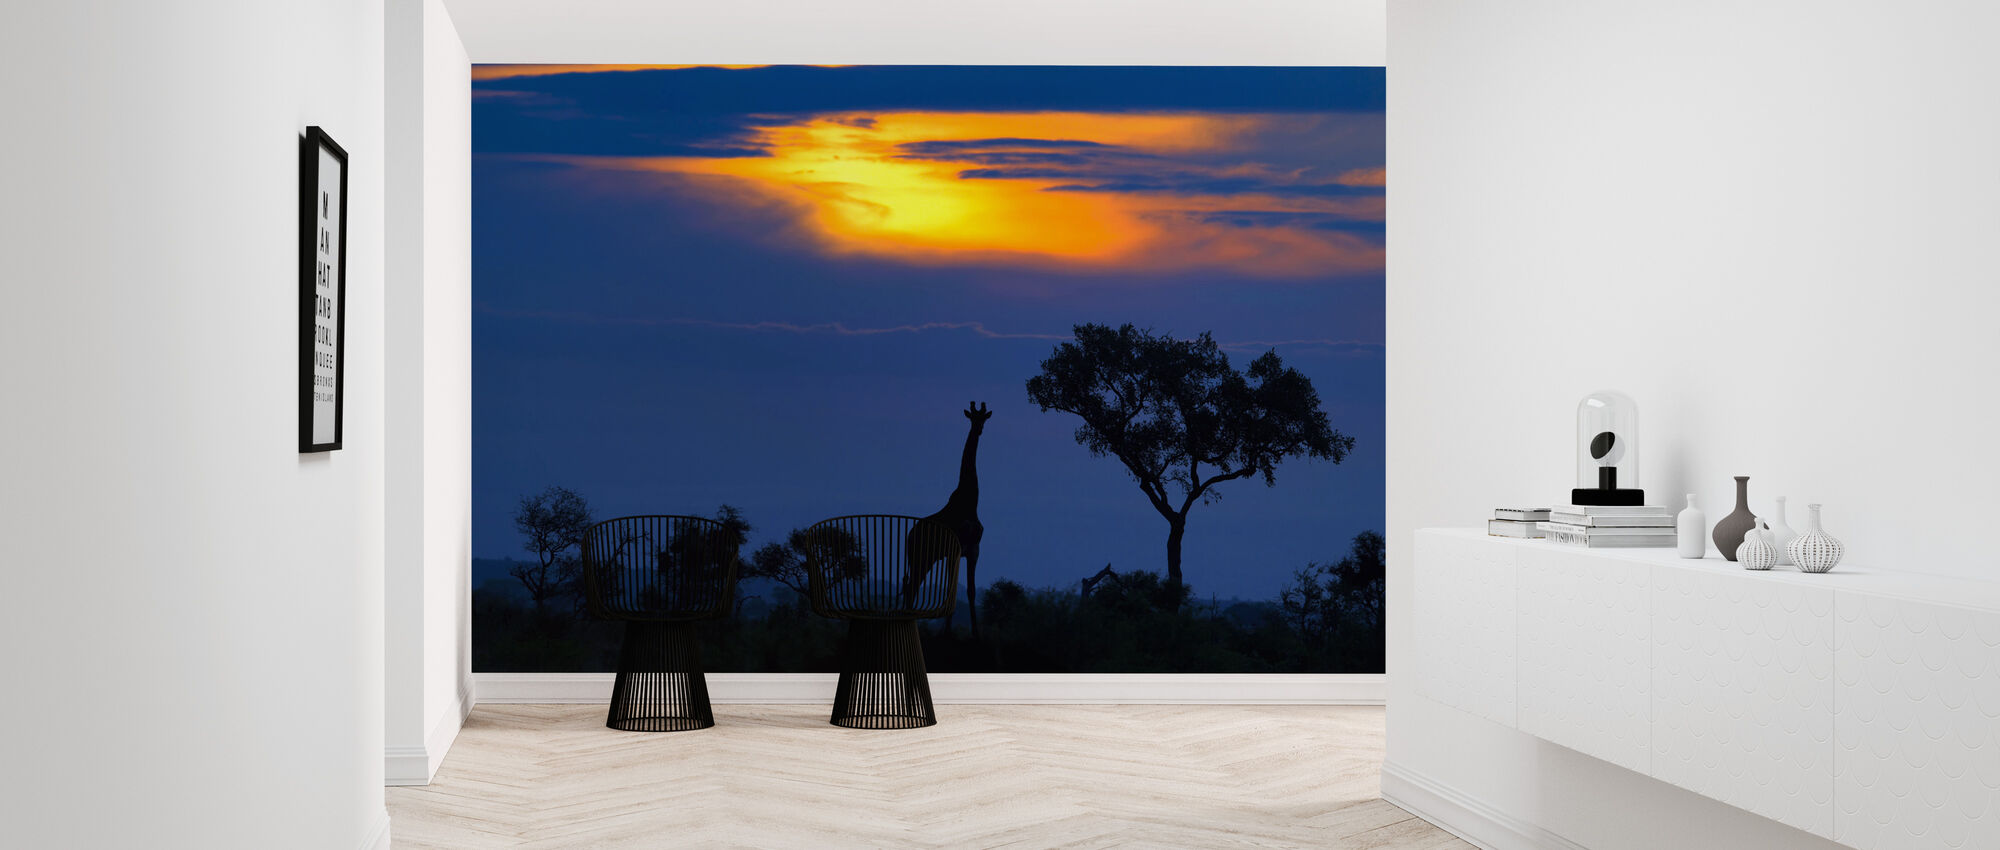 A Giraffe at Sunset - Wallpaper - Hallway